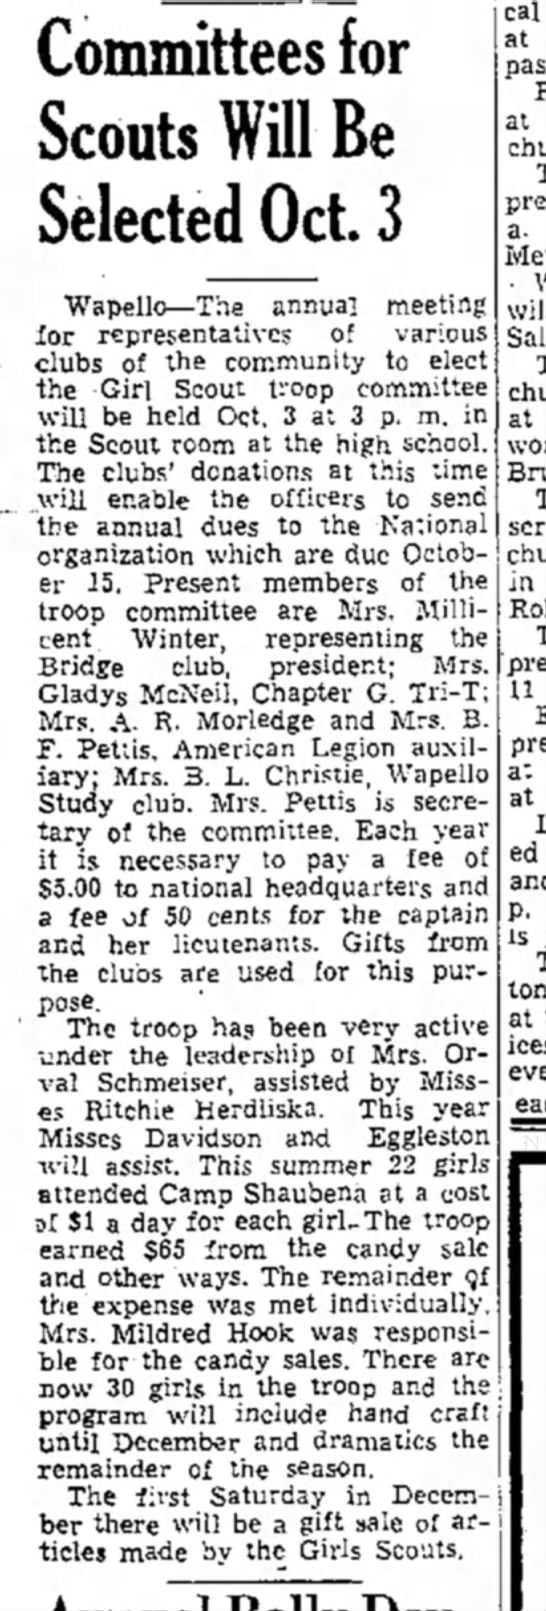 1939 (27) Wapello Muscatine News-Tribune 9.29.1939 - Committees for Scouts Will Be Selected Oct. 3...